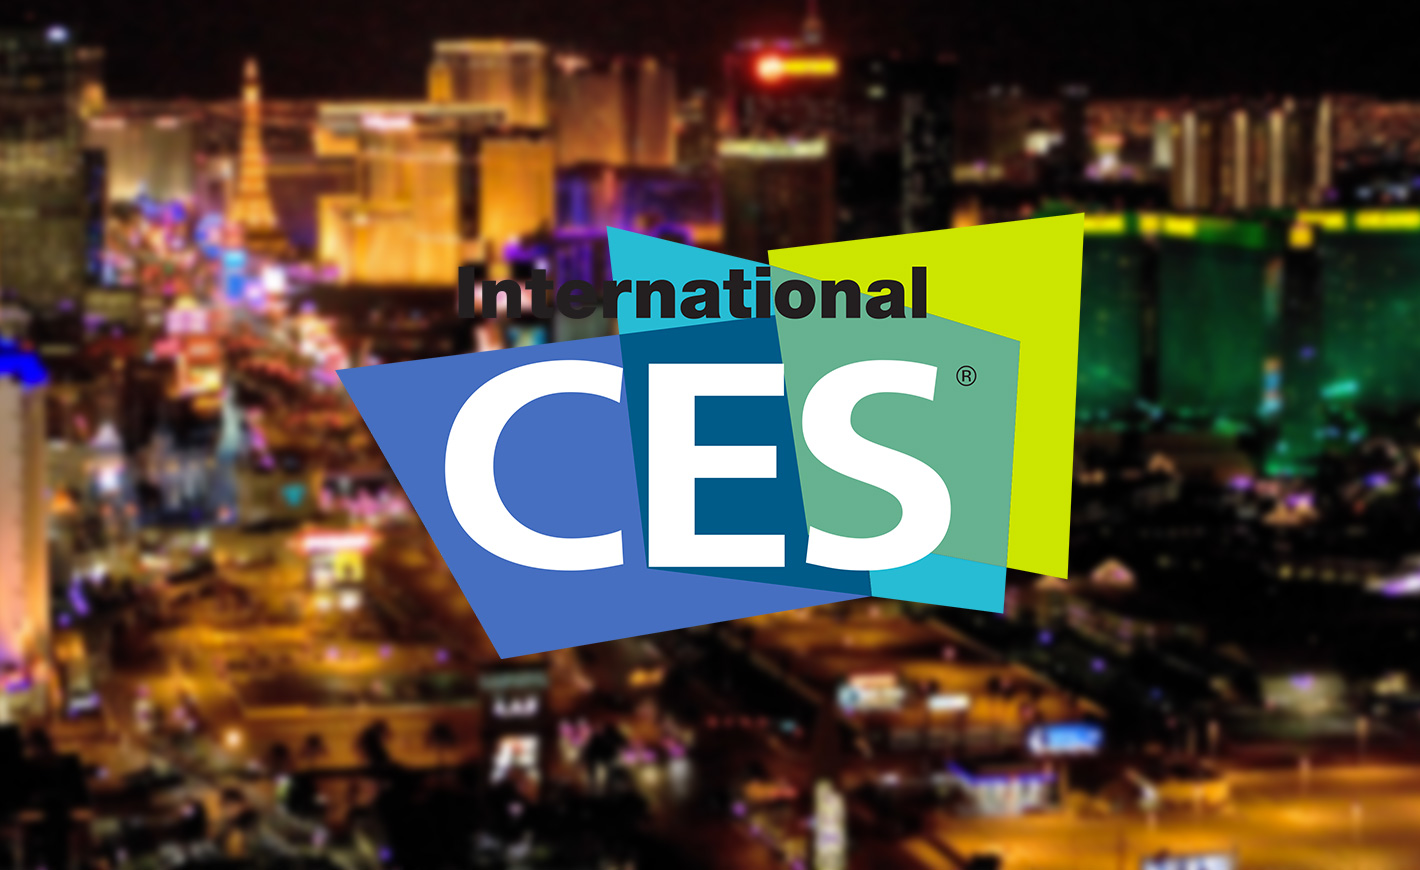 Consumer Electronic Show (CES) 2016 stelt ons de laatste 'connected innovations' voor